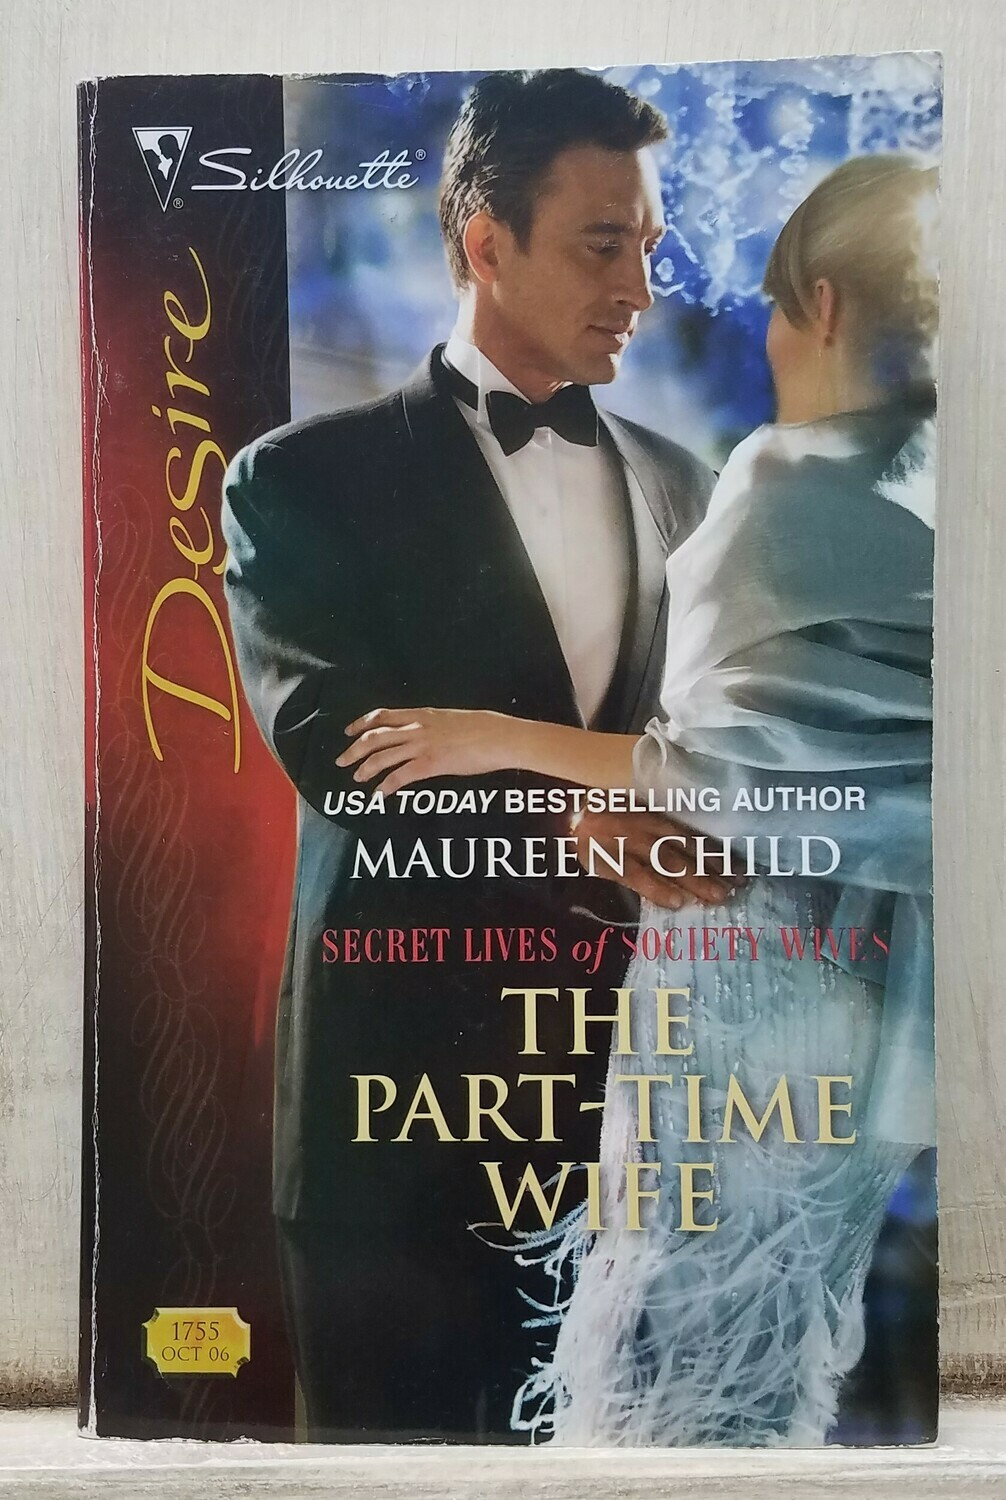 The Part-Time Wife by Maureen Child